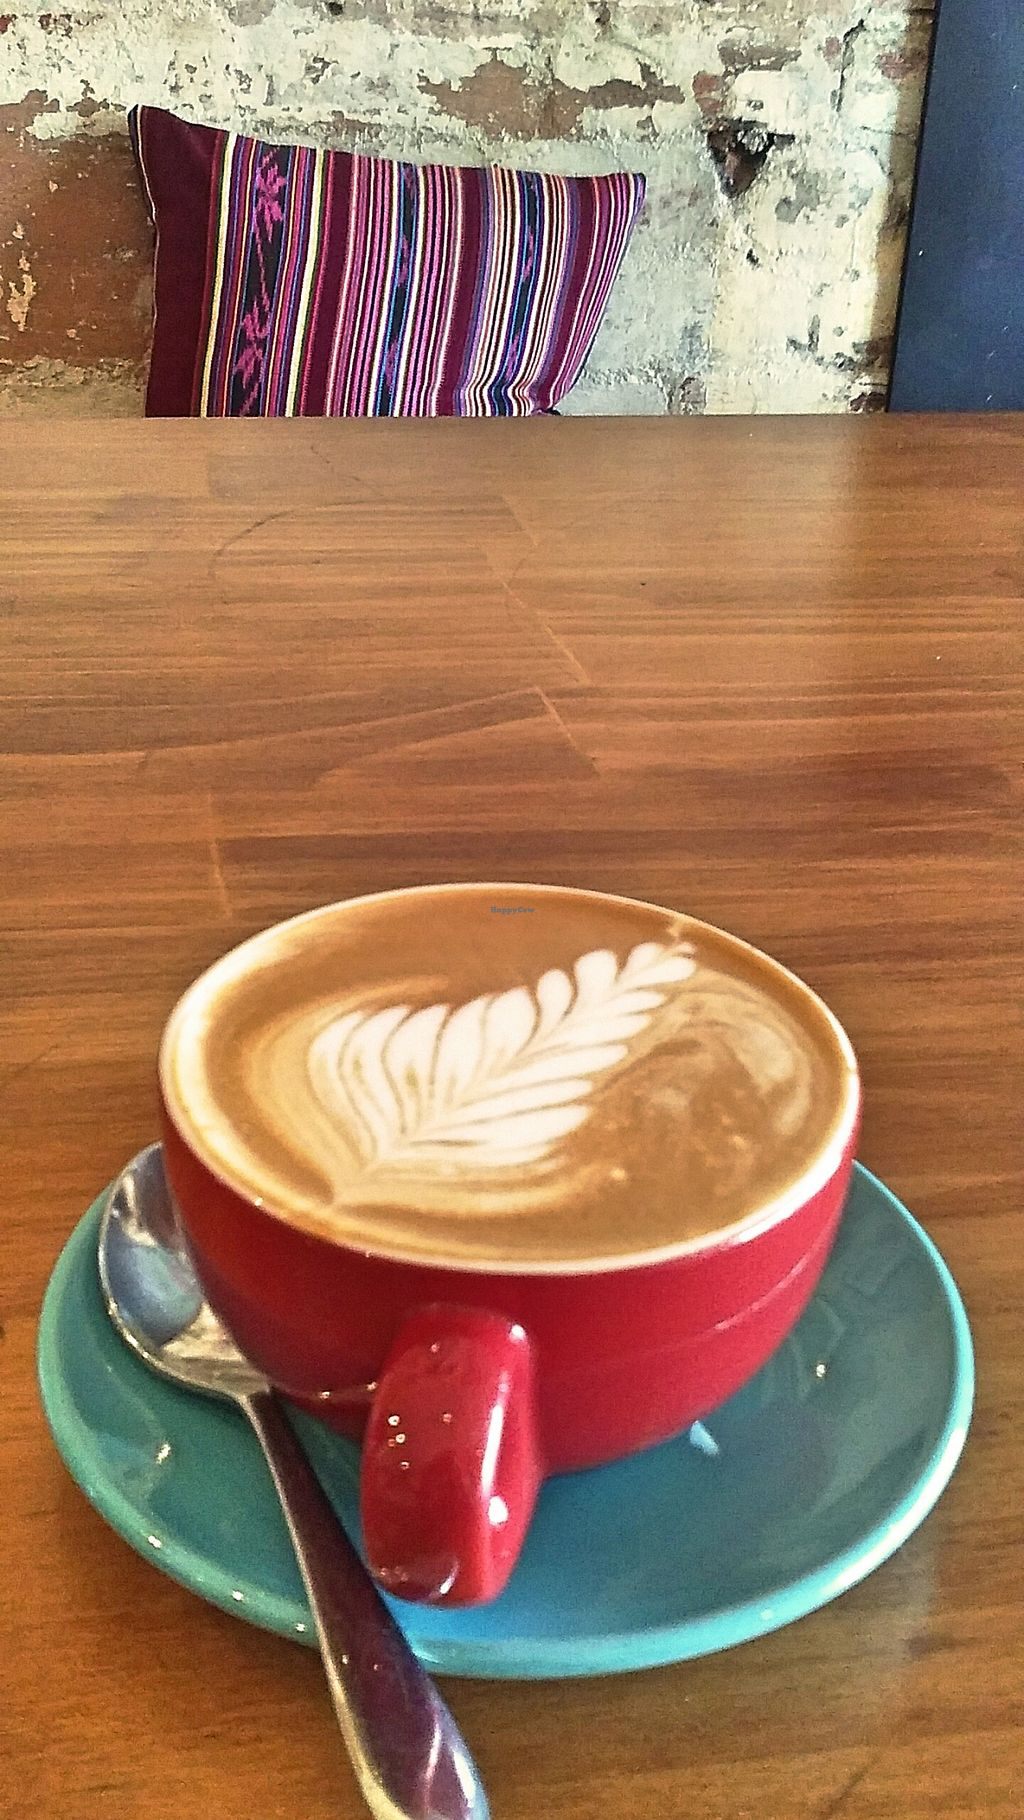 """Photo of Wild Timor Cafe  by <a href=""""/members/profile/verbosity"""">verbosity</a> <br/>Almond Coffee <br/> November 17, 2015  - <a href='/contact/abuse/image/51127/125332'>Report</a>"""